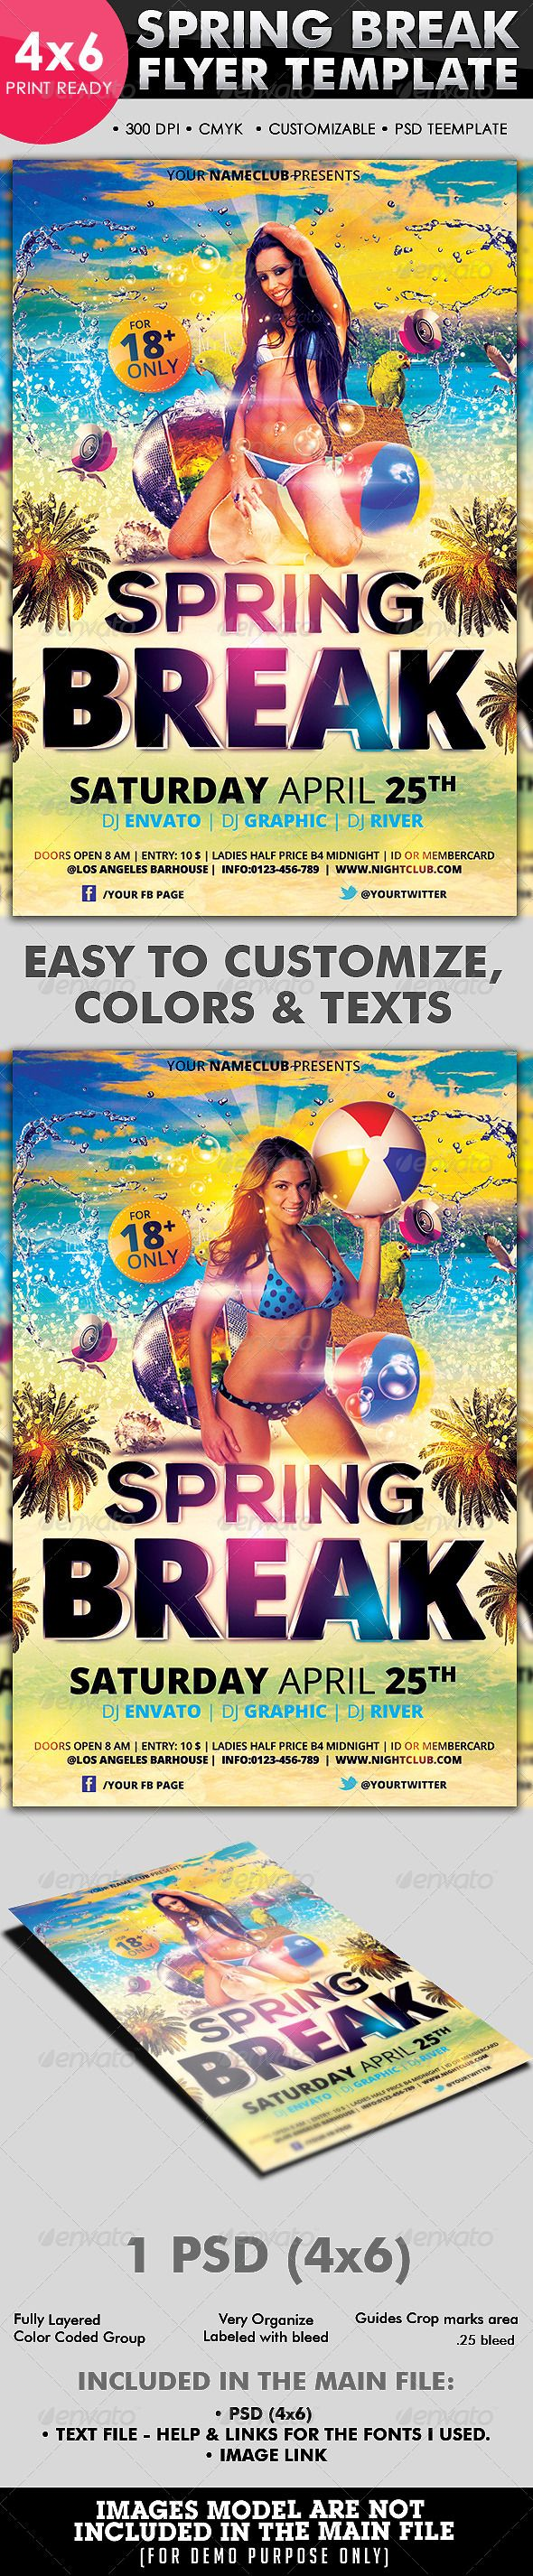 Spring Break Flyer Template  #GraphicRiver         Best for promoting you party this summer!   This flyer can also be used to promote your Club events, Birthday bash, etc. all elements shown are included in the PSD except for the model.  THE PSD FILE SET UP   1 PSD   4X6 ( .25 bleed)   300 DPI  CMYK  Editable colors  Editable text layers  Very Organize  Fully Layered  With bleed  With crop marks area  With guidelines  Fonts  Open sans  Nexa  INCLUDED IN THE MAIN FILE  1 PSD   Text file – Help & Links for the fonts I used.  Images Link  IMAGES MODEL ARE NOT INCLUDED IN THE MAIN FILE.  CREDITS  Playing on the beach  Beach ball girl  Mockup from CarlosViloria   if you like it please rate it.  Have fun! Enjoy!  Facebook Timeline Cover       Flyer's Bundle   Club/Dance Battle/Party/Events Flyers                                                           Created: 1April13 GraphicsFilesIncluded: PhotoshopPSD Layered: Yes MinimumAdobeCSVersion: CS3 PrintDimensions: 4×6 Tags: colorful #creative #disco #flyer #girls #glamorous #heat #holidays #lights #modern #moves #music #night #pink #pool #poster #pretty #sexy #sound #spring #summer #sunday #swim #swirl #templates #water #yellow